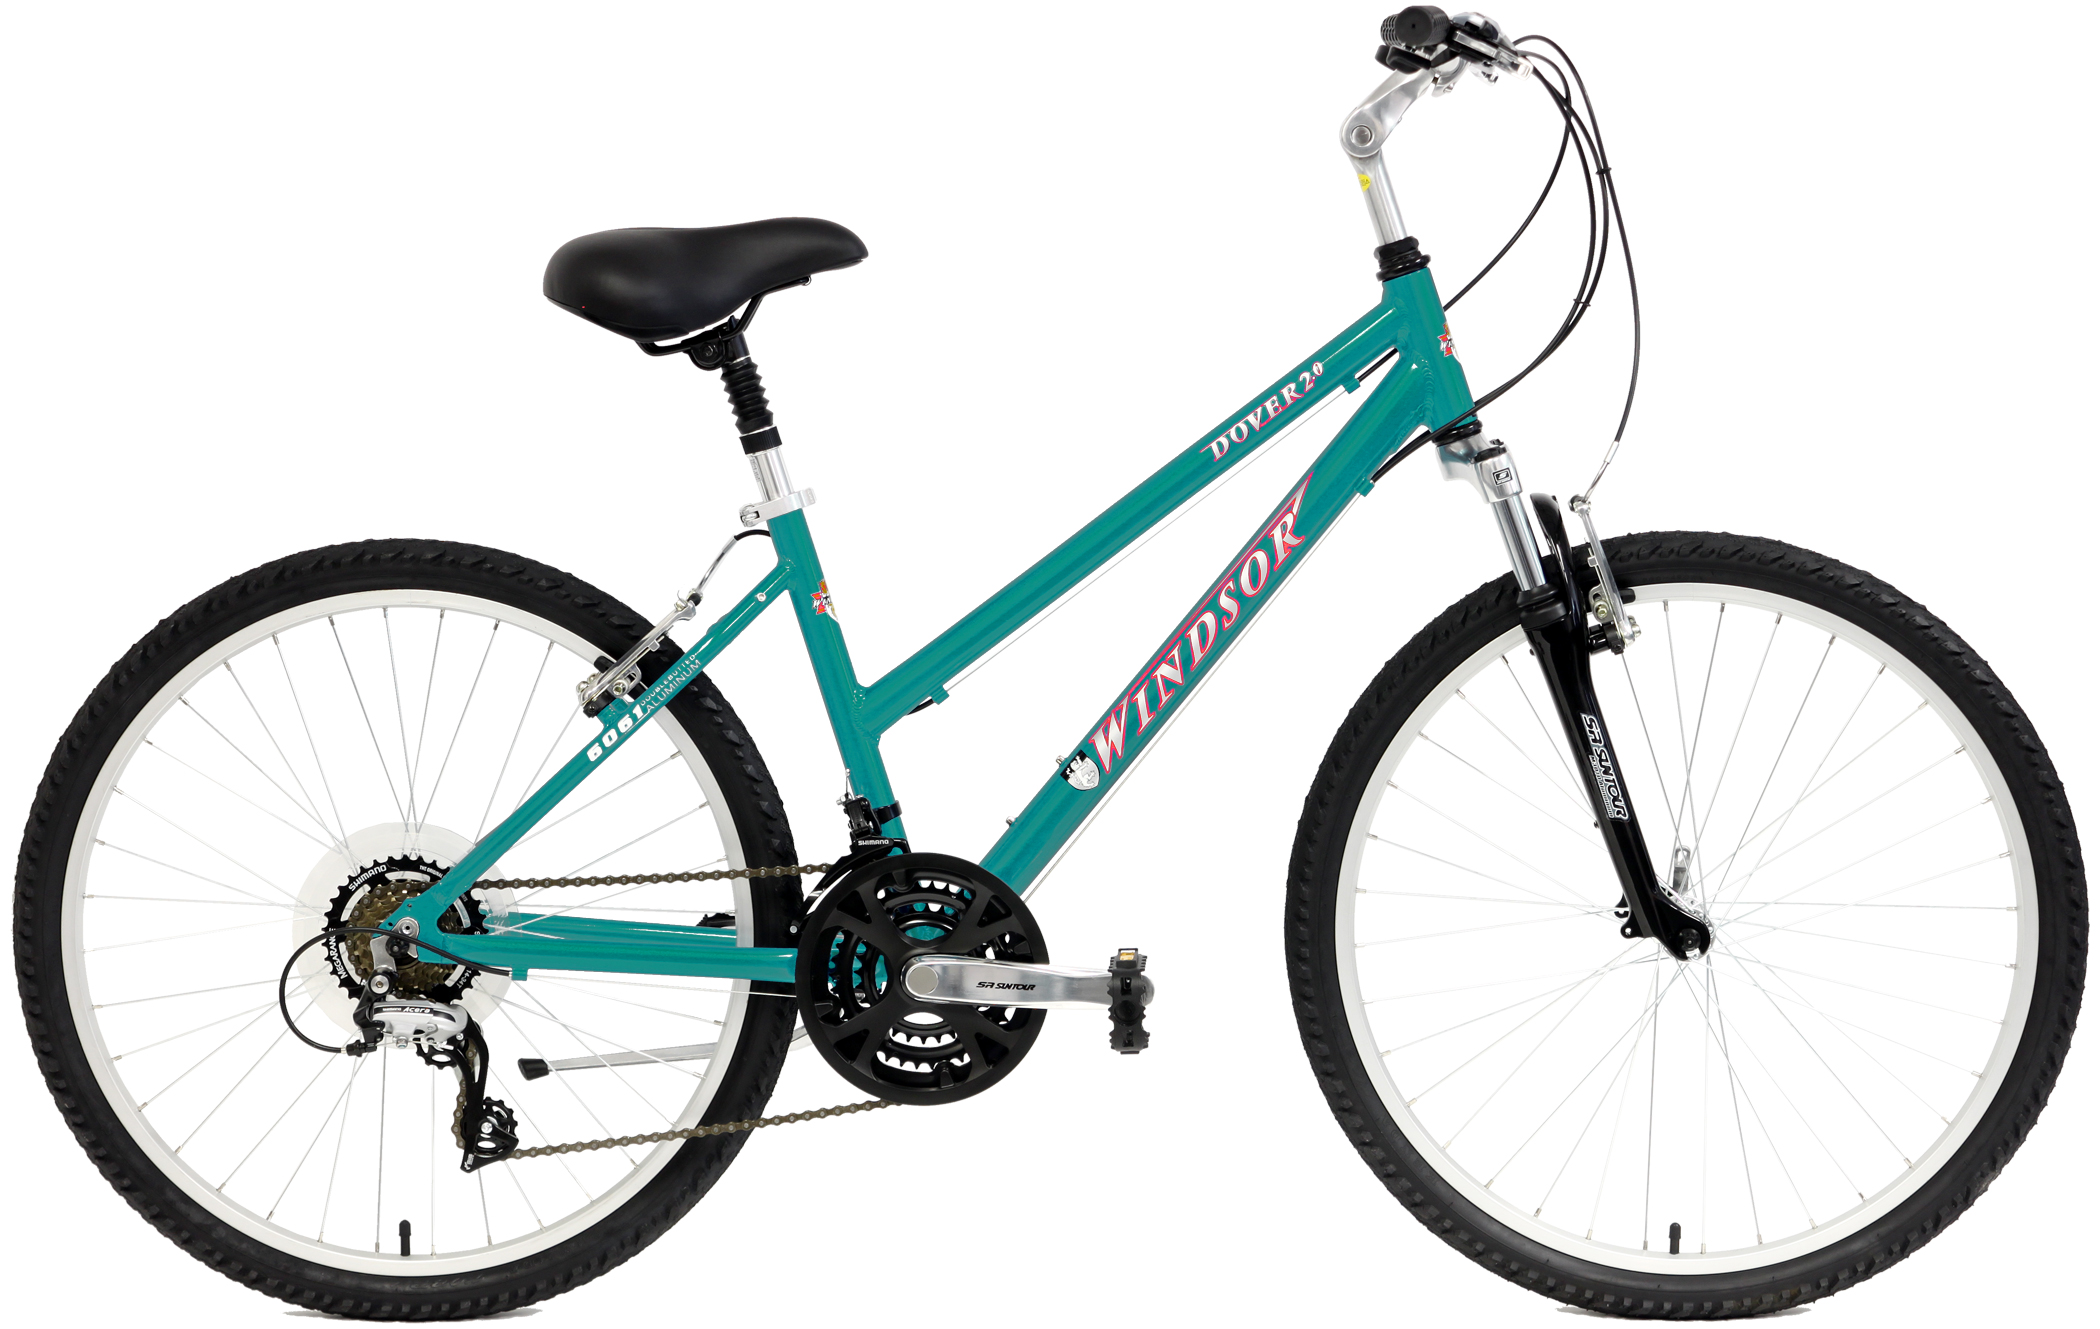 DOVER 2.0 - WOMAN'S SHIMANO ALUMINUM 21sp BIKE w/ SHOCKS